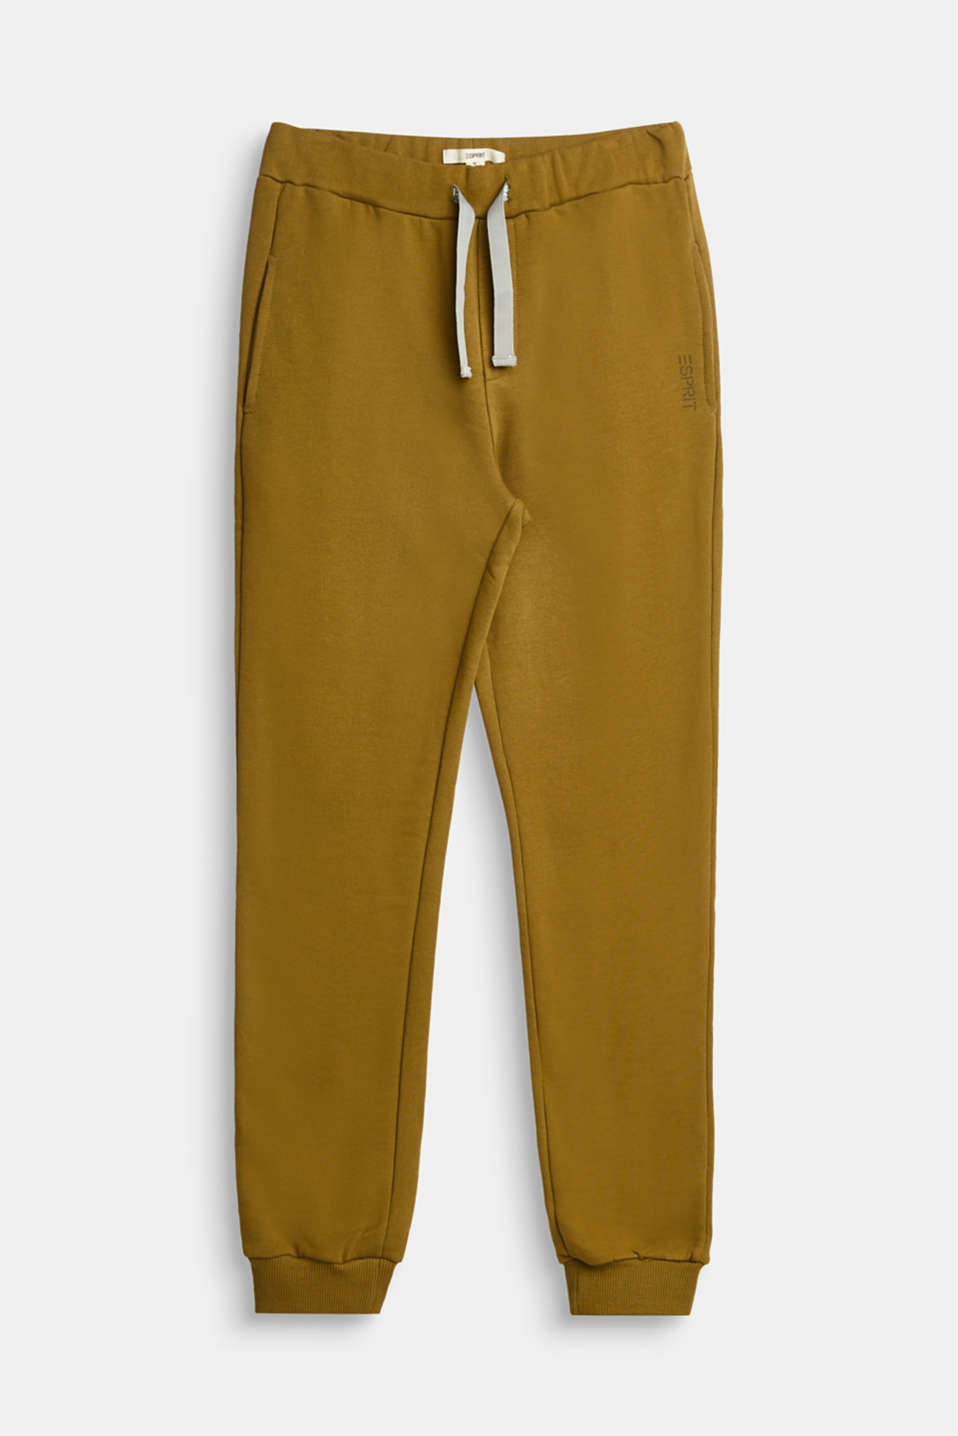 Esprit - fashion jogging pants